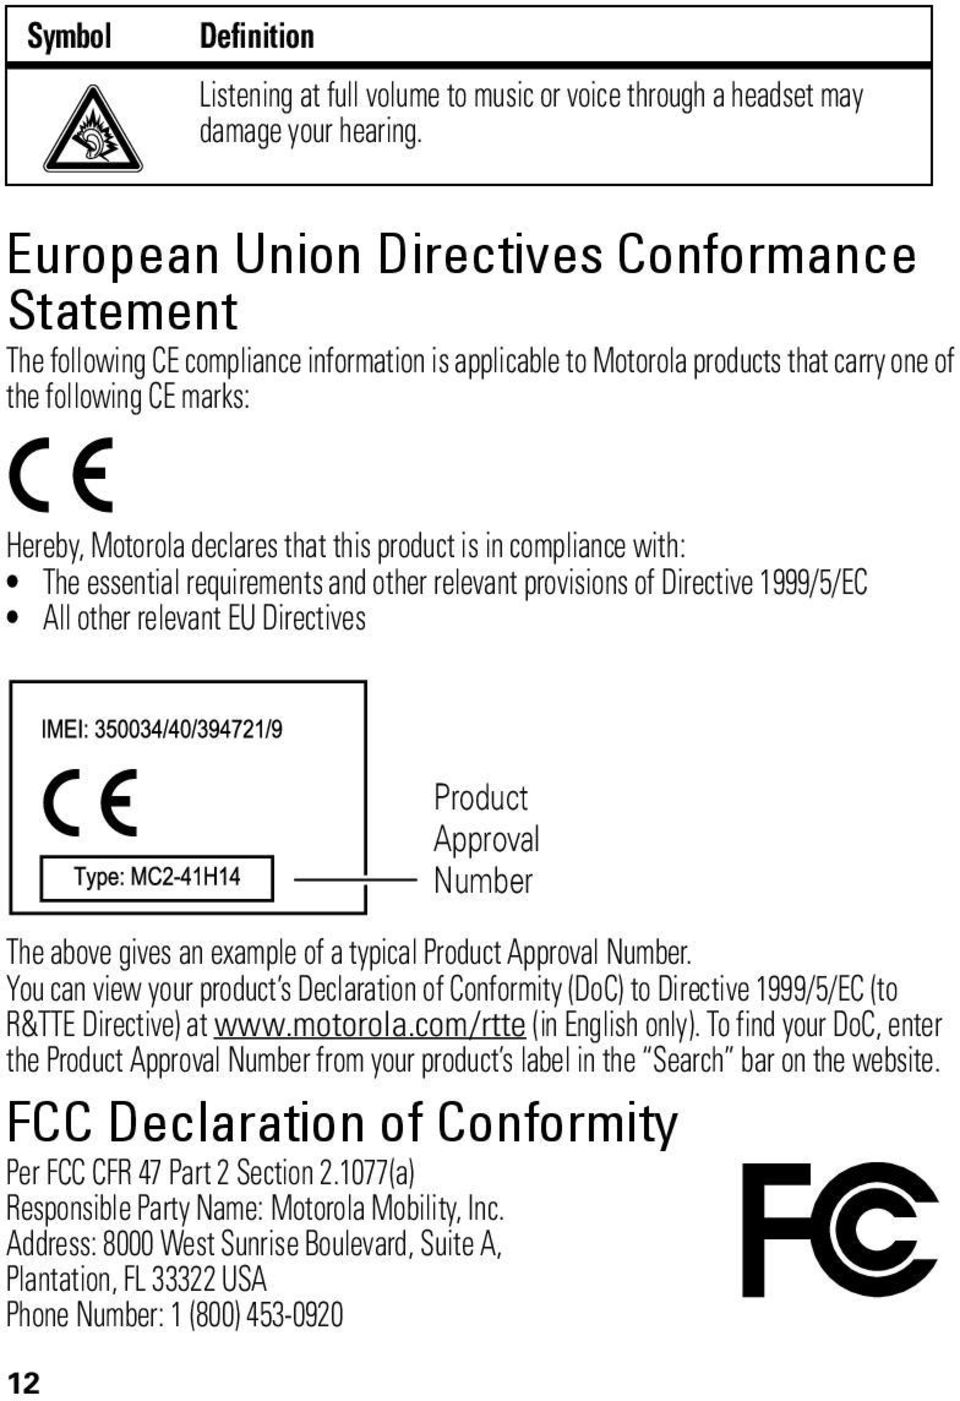 declares that this product is in compliance with: The essential requirements and other relevant provisions of Directive 1999/5/EC All other relevant EU Directives The above gives an example of a